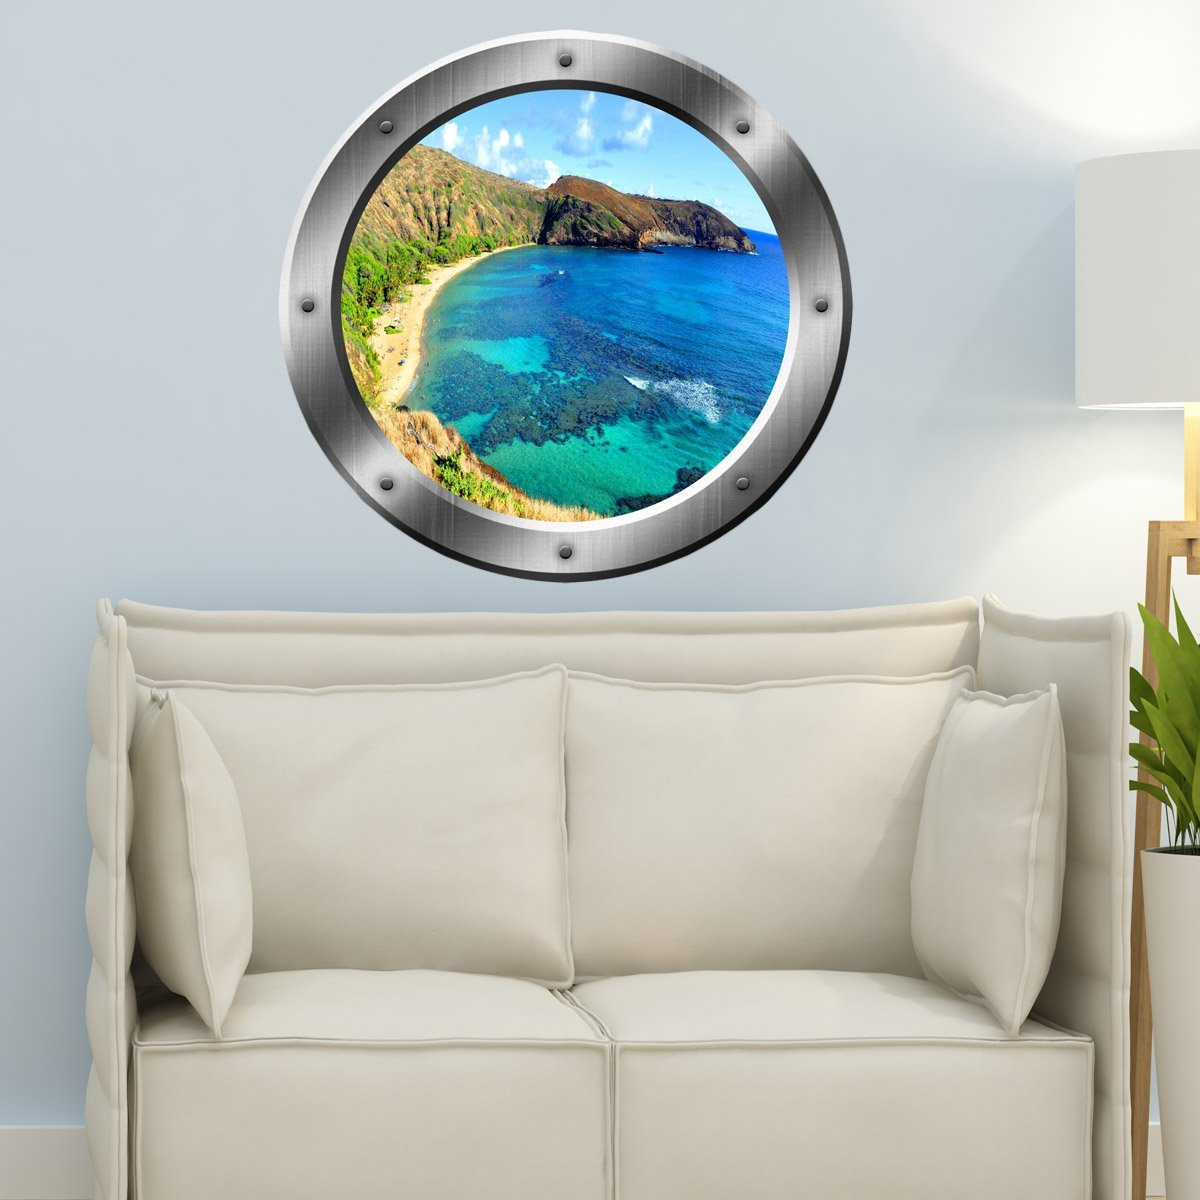 VWAQ Ocean Cliff View Silver Window Porthole Peel and Stick Vinyl Wall Decal - SP18 - VWAQ Vinyl Wall Art Quotes and Prints